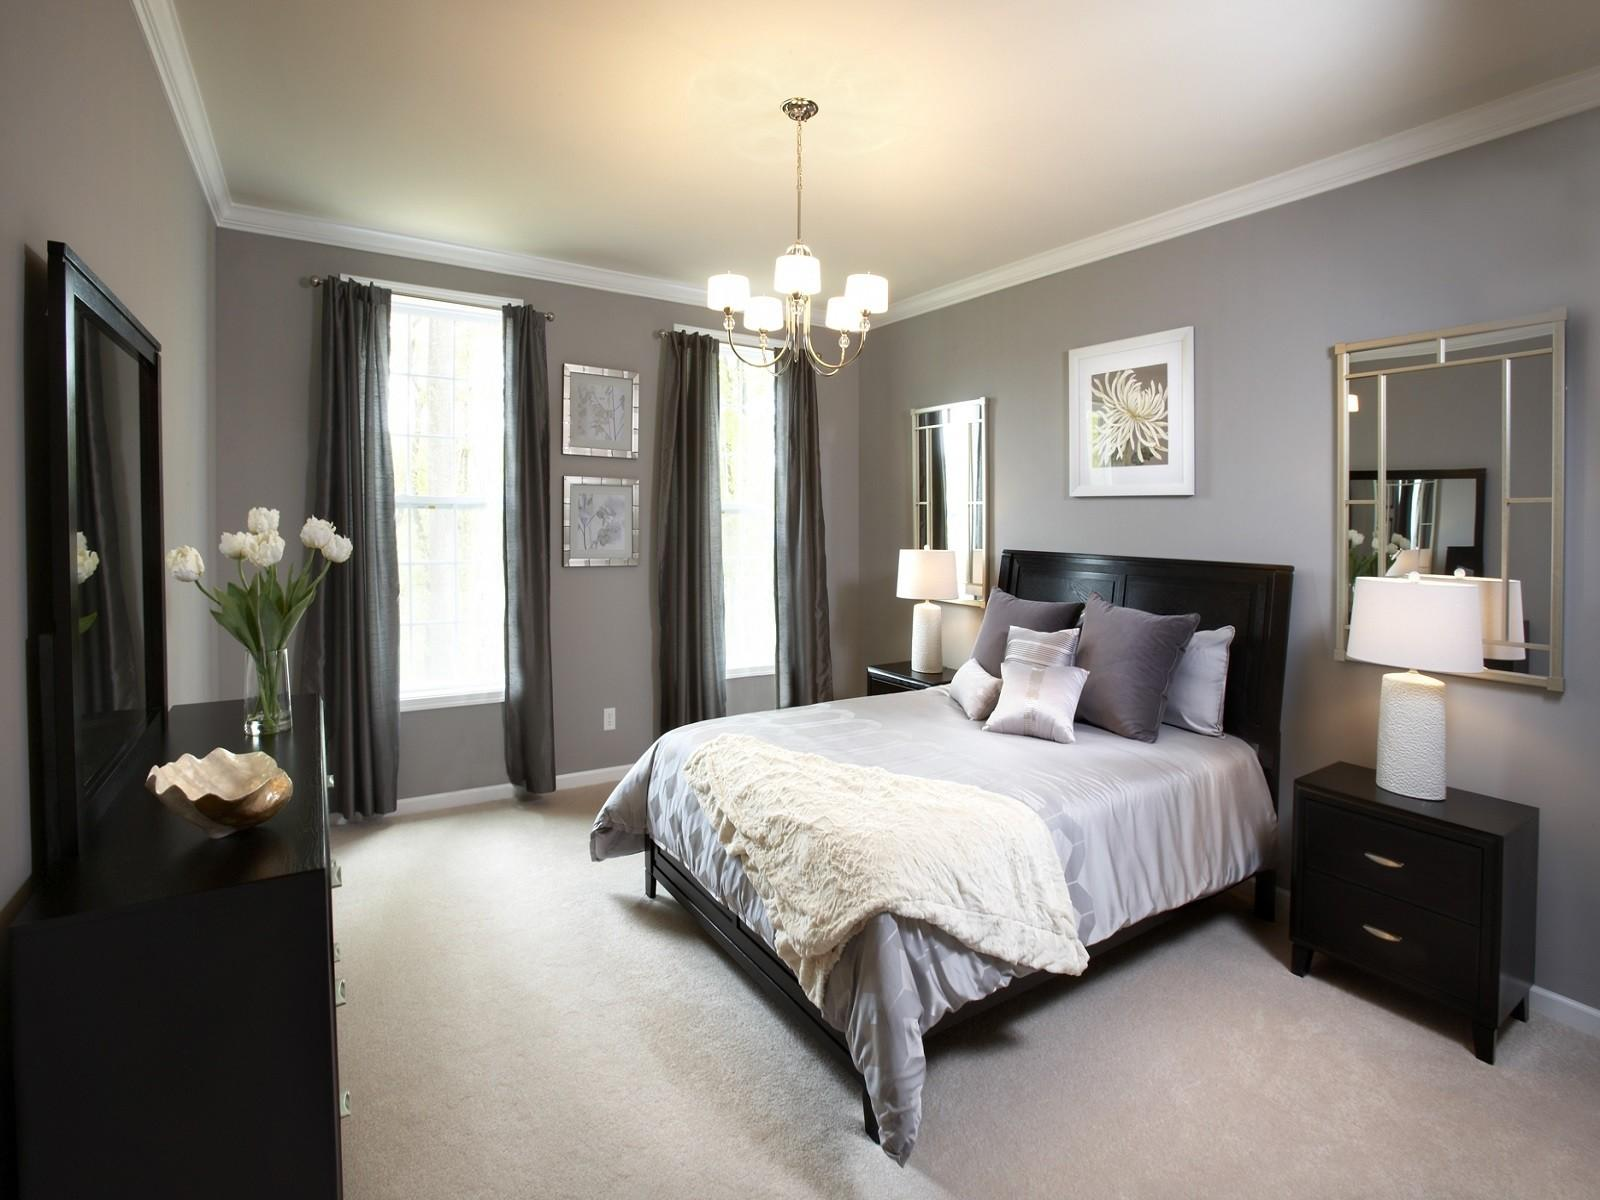 Bight Bedroom Interior Low Budget Feat Black Wood Bed